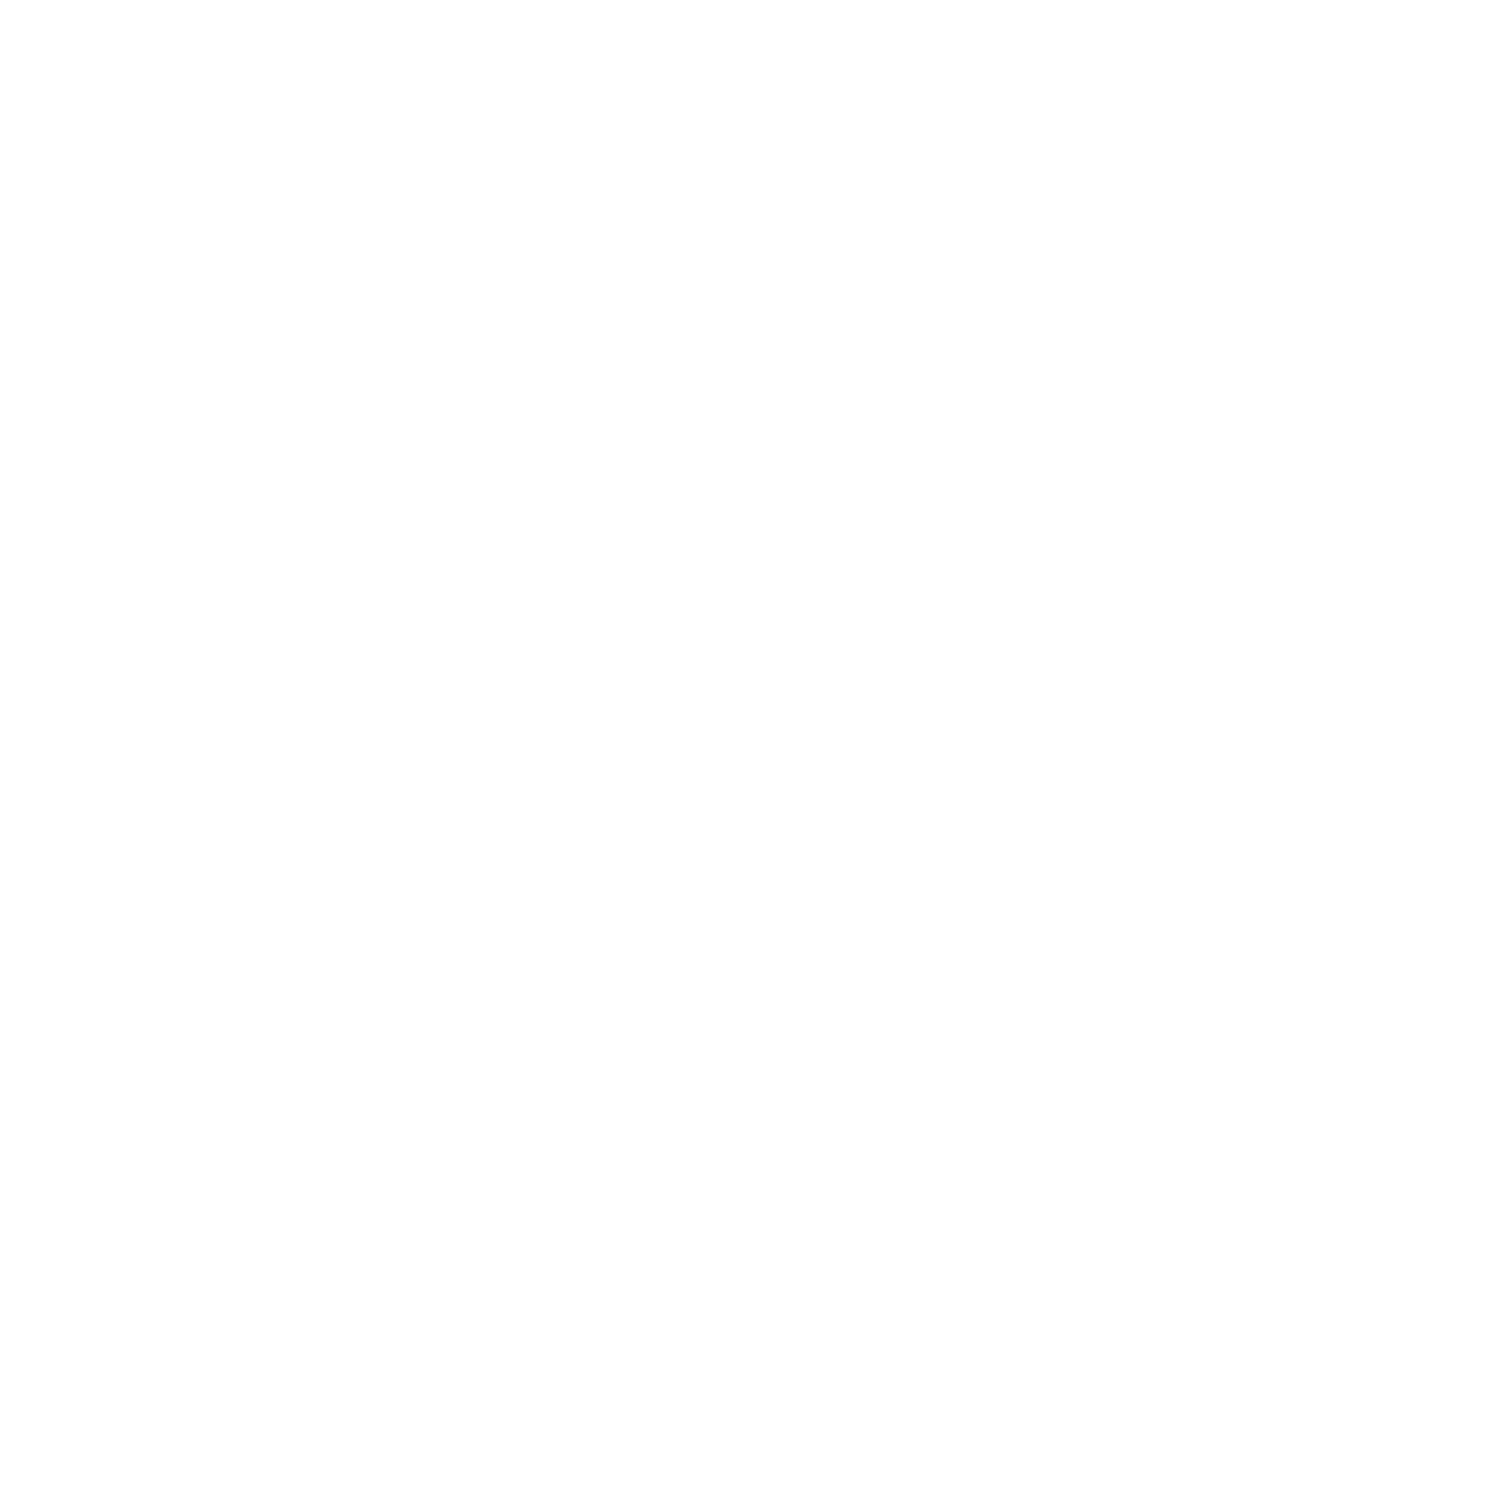 Westmont Collective